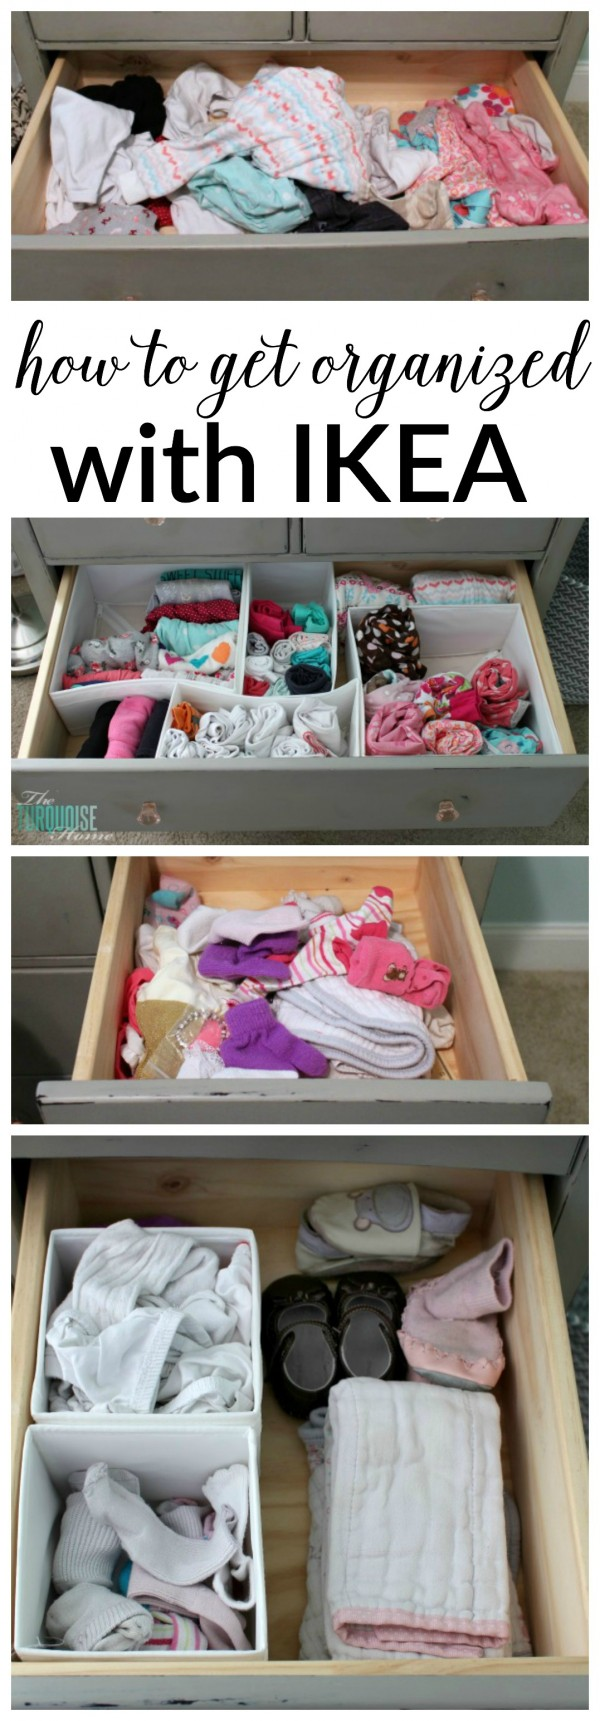 Yes, please!! Organize your whole house with IKEA products!